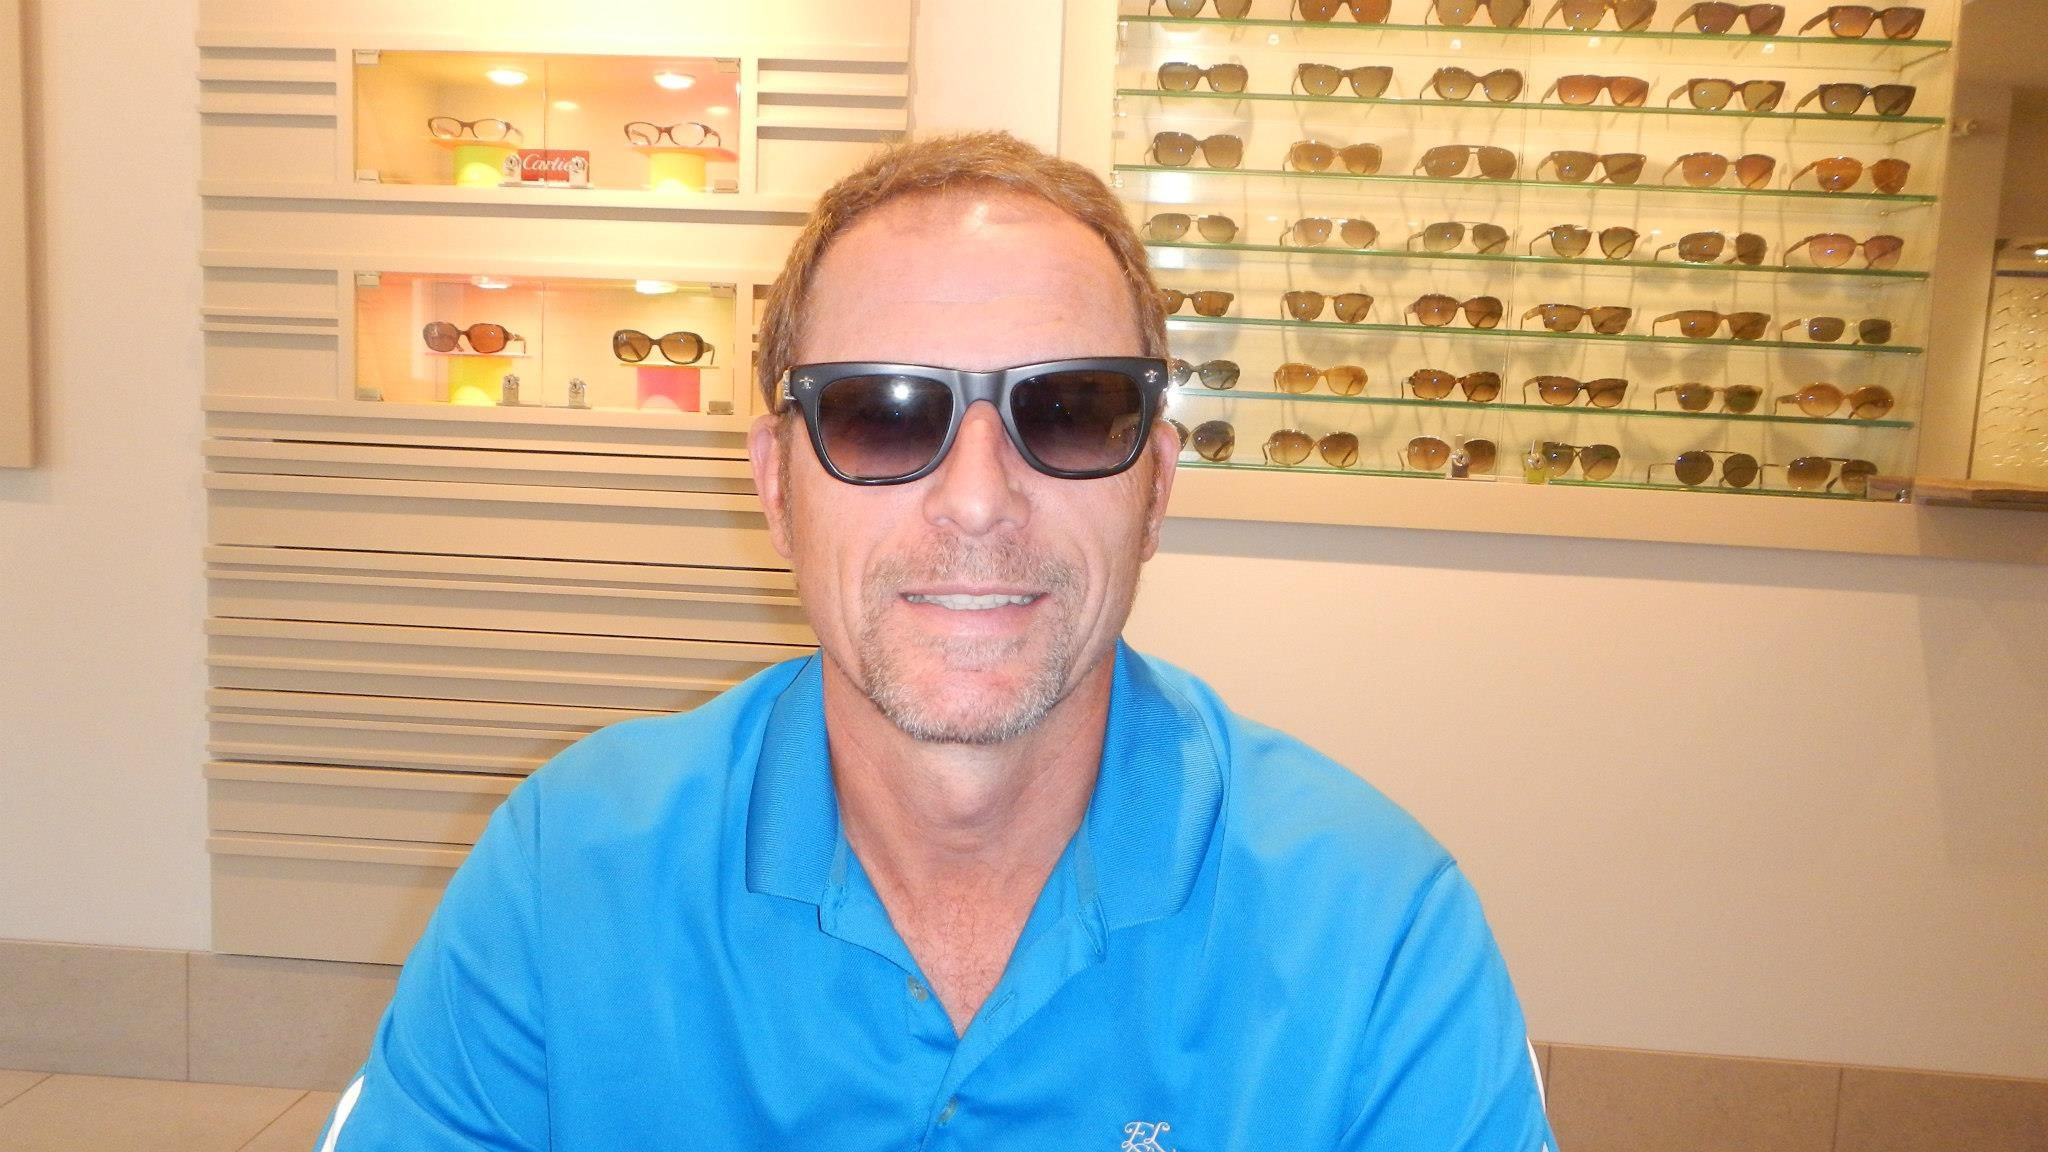 b55ecaf62e A happy customer wearing a pair of  ChromeHearts   sunglasses during a  fitting at Squint Eyewear in Oakville